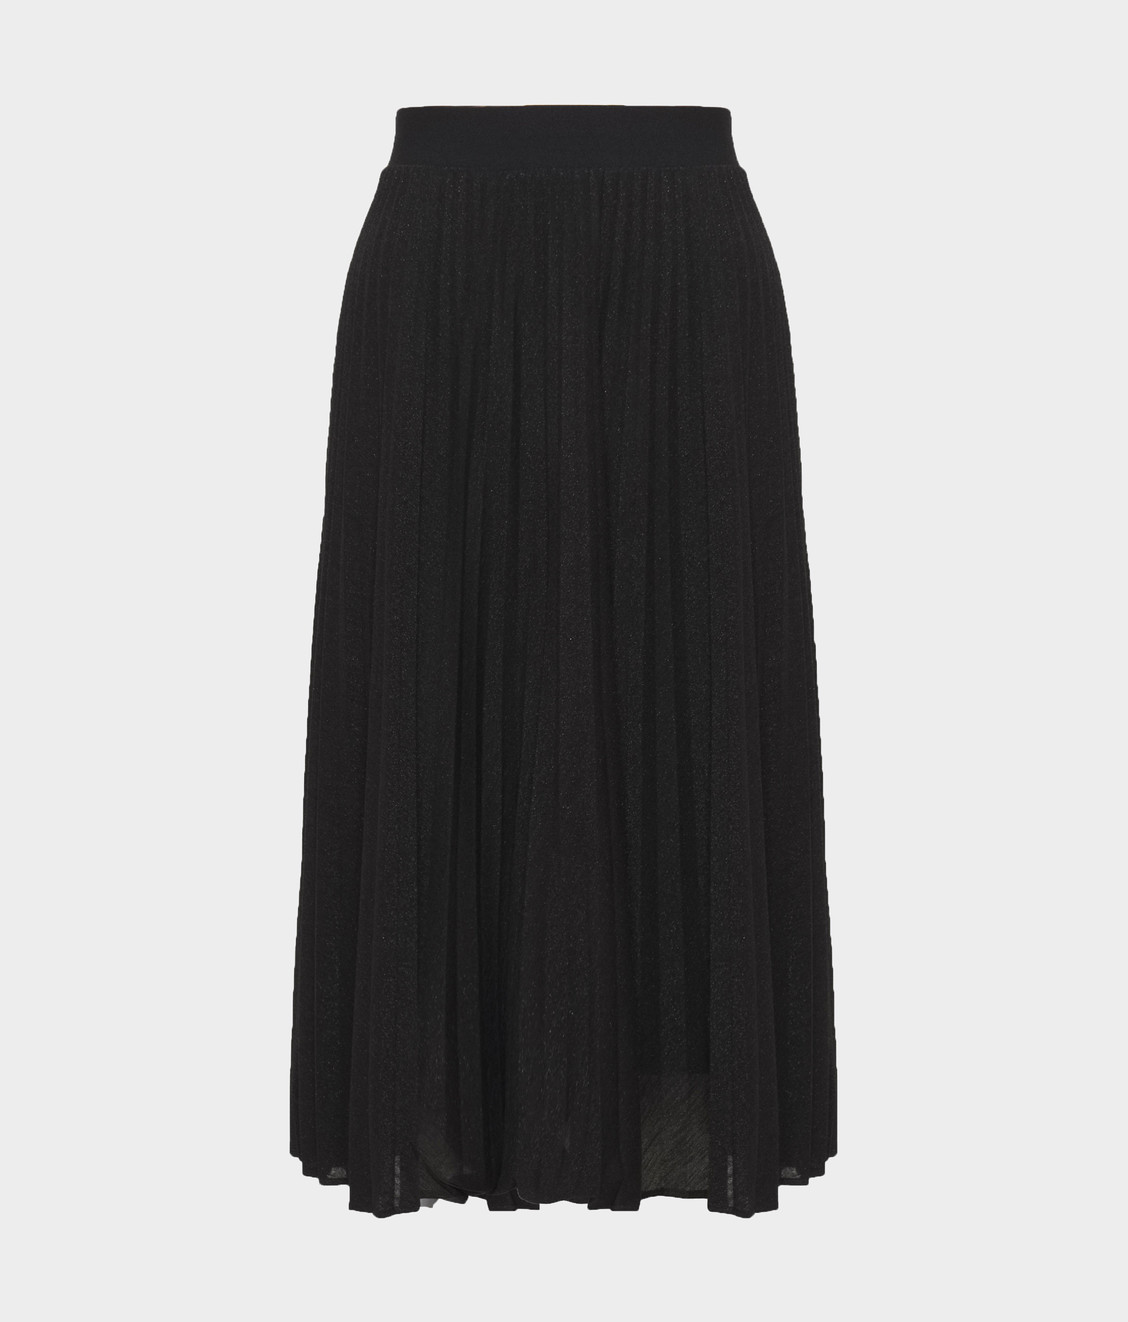 Libertine Libertine Libertine Skirt Closer Black